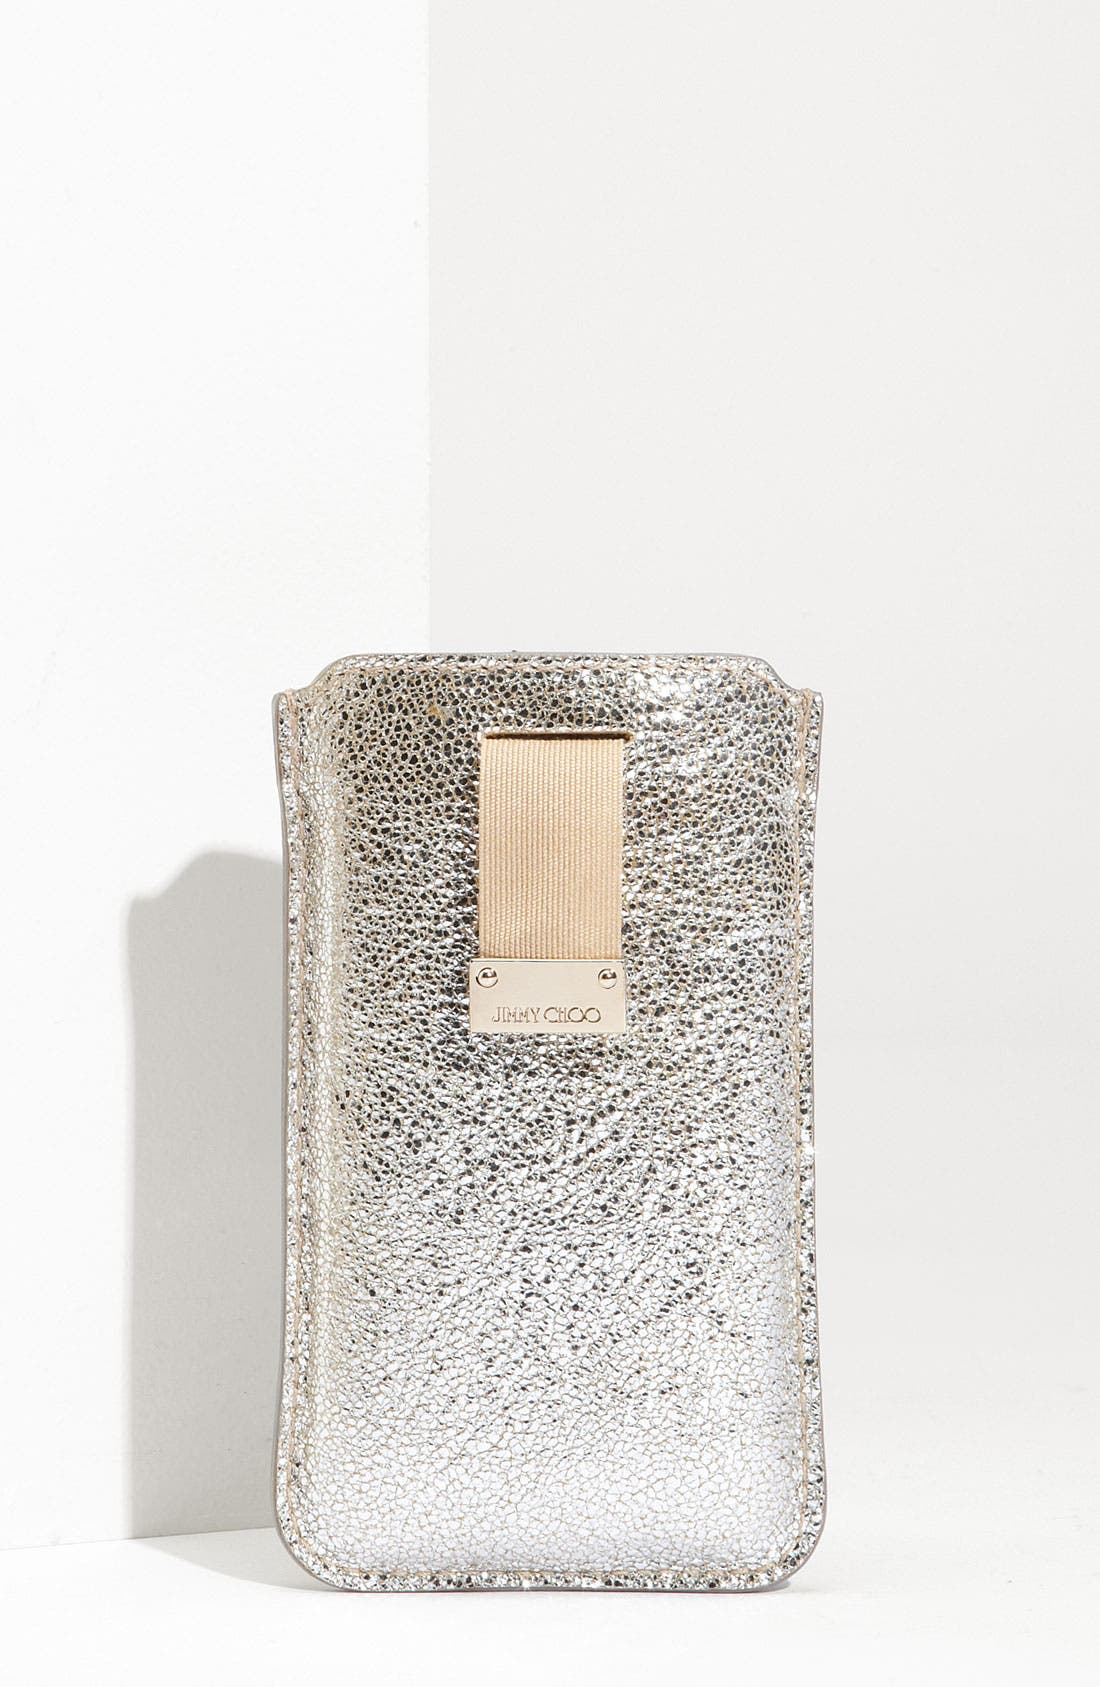 Alternate Image 1 Selected - Jimmy Choo 'Trent' Leather iPhone Case